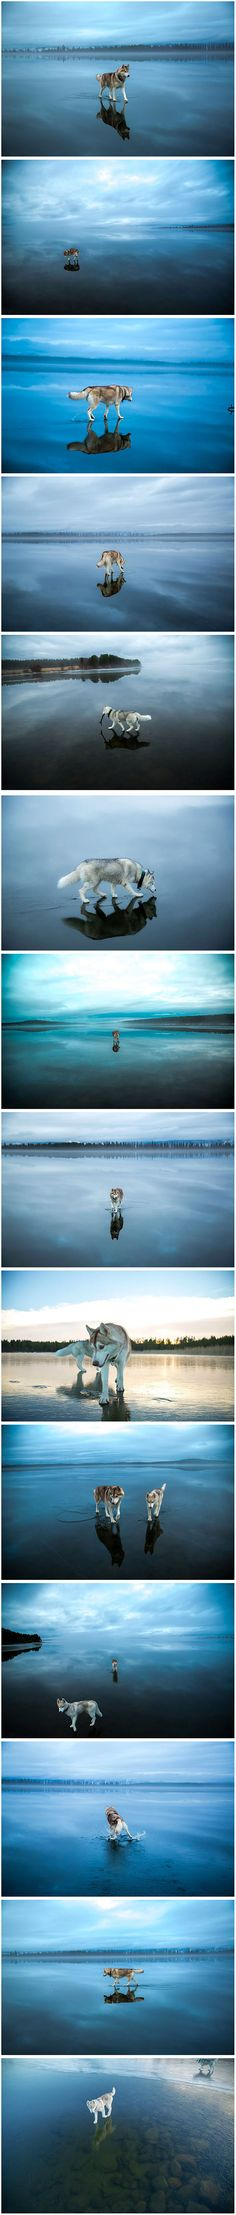 A photographer in Russia who goes by Fox Grom has captured some stunning images of his Siberian Huskies playing on a thawing frozen lake, which makes them seem like they're walking on a giant mirror or on the sky itself. Grom lives in Kirovsk in Murmansk Oblast, which is one of Russia's northernmost regions. Almost the entire area is north of the Arctic circle, meaning that his hardy dogs are no strangers to the cold. The lake is frozen solid but not completely so, and the thin film of…